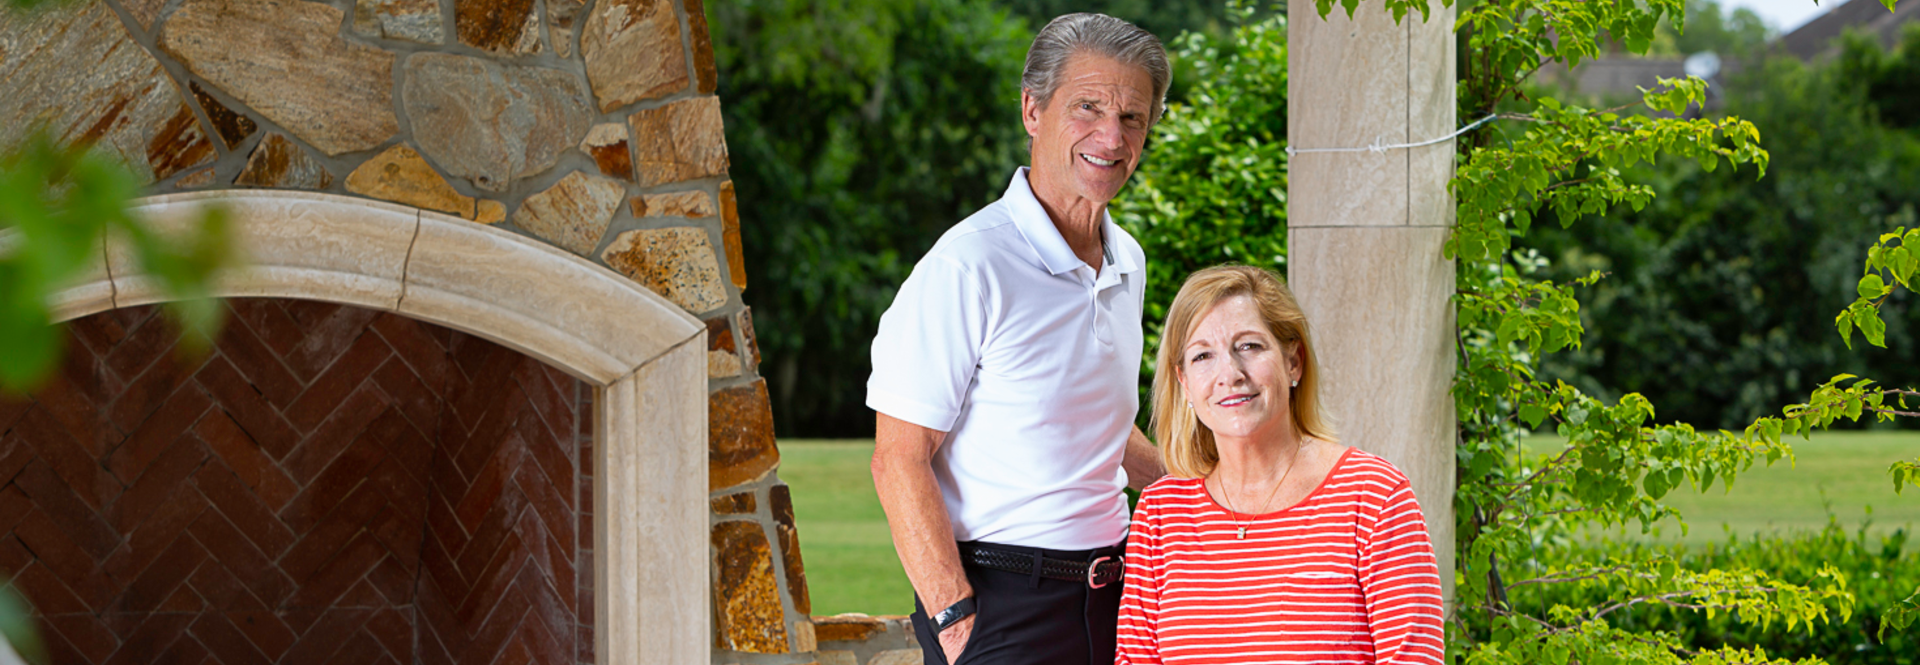 A $5 million gift from Ellie and Don Knauss positions Texas A&M